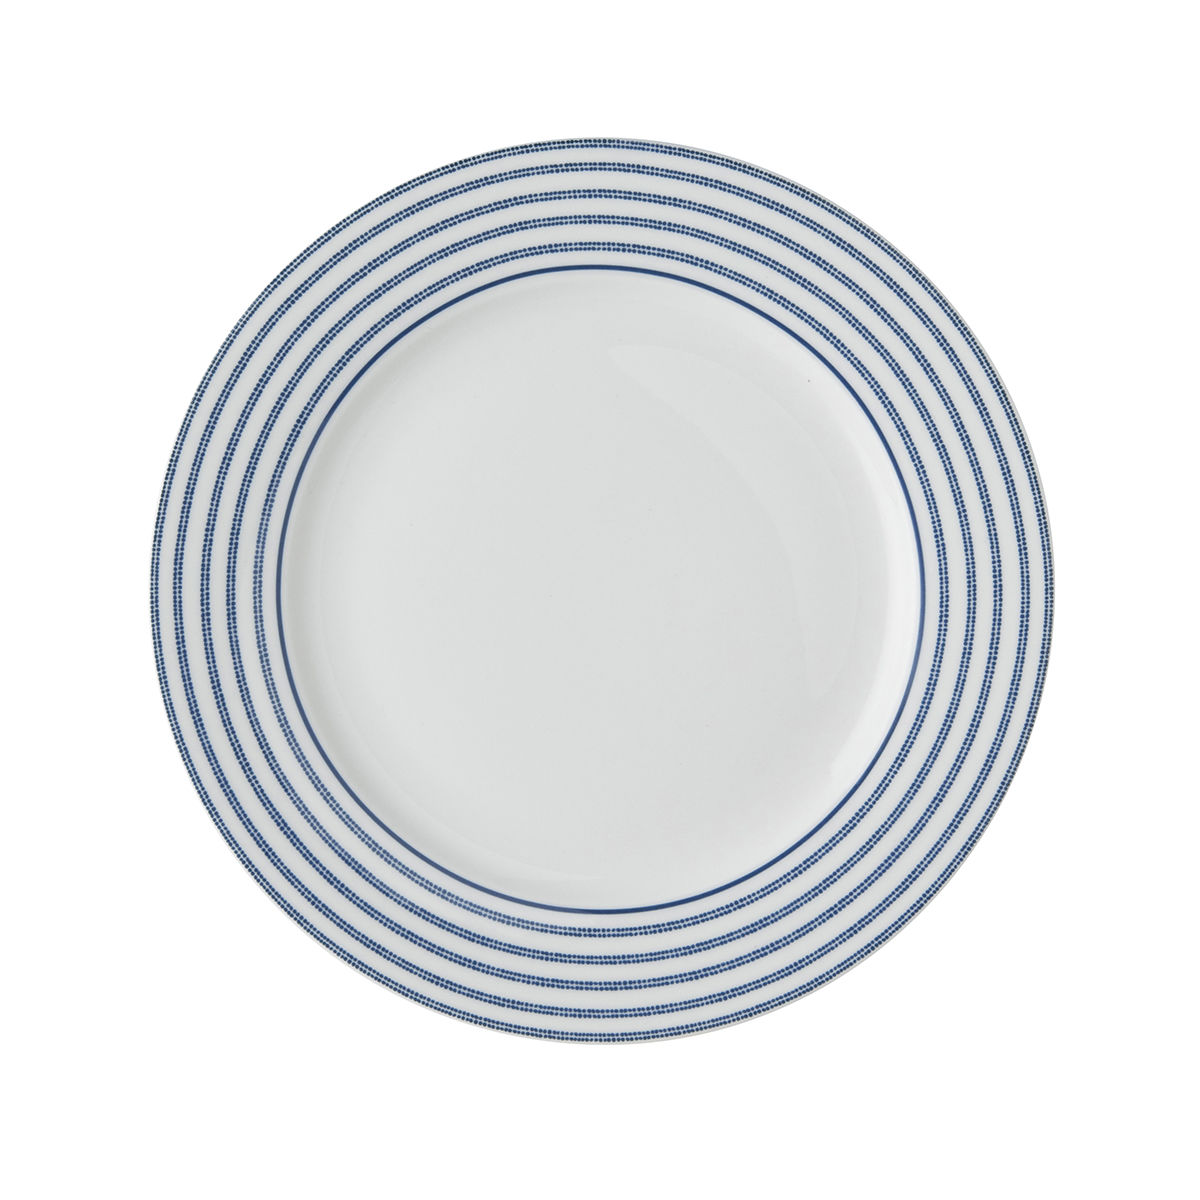 "Laura Ashley 7.75"" Plate Candy Stripe - product images  of"